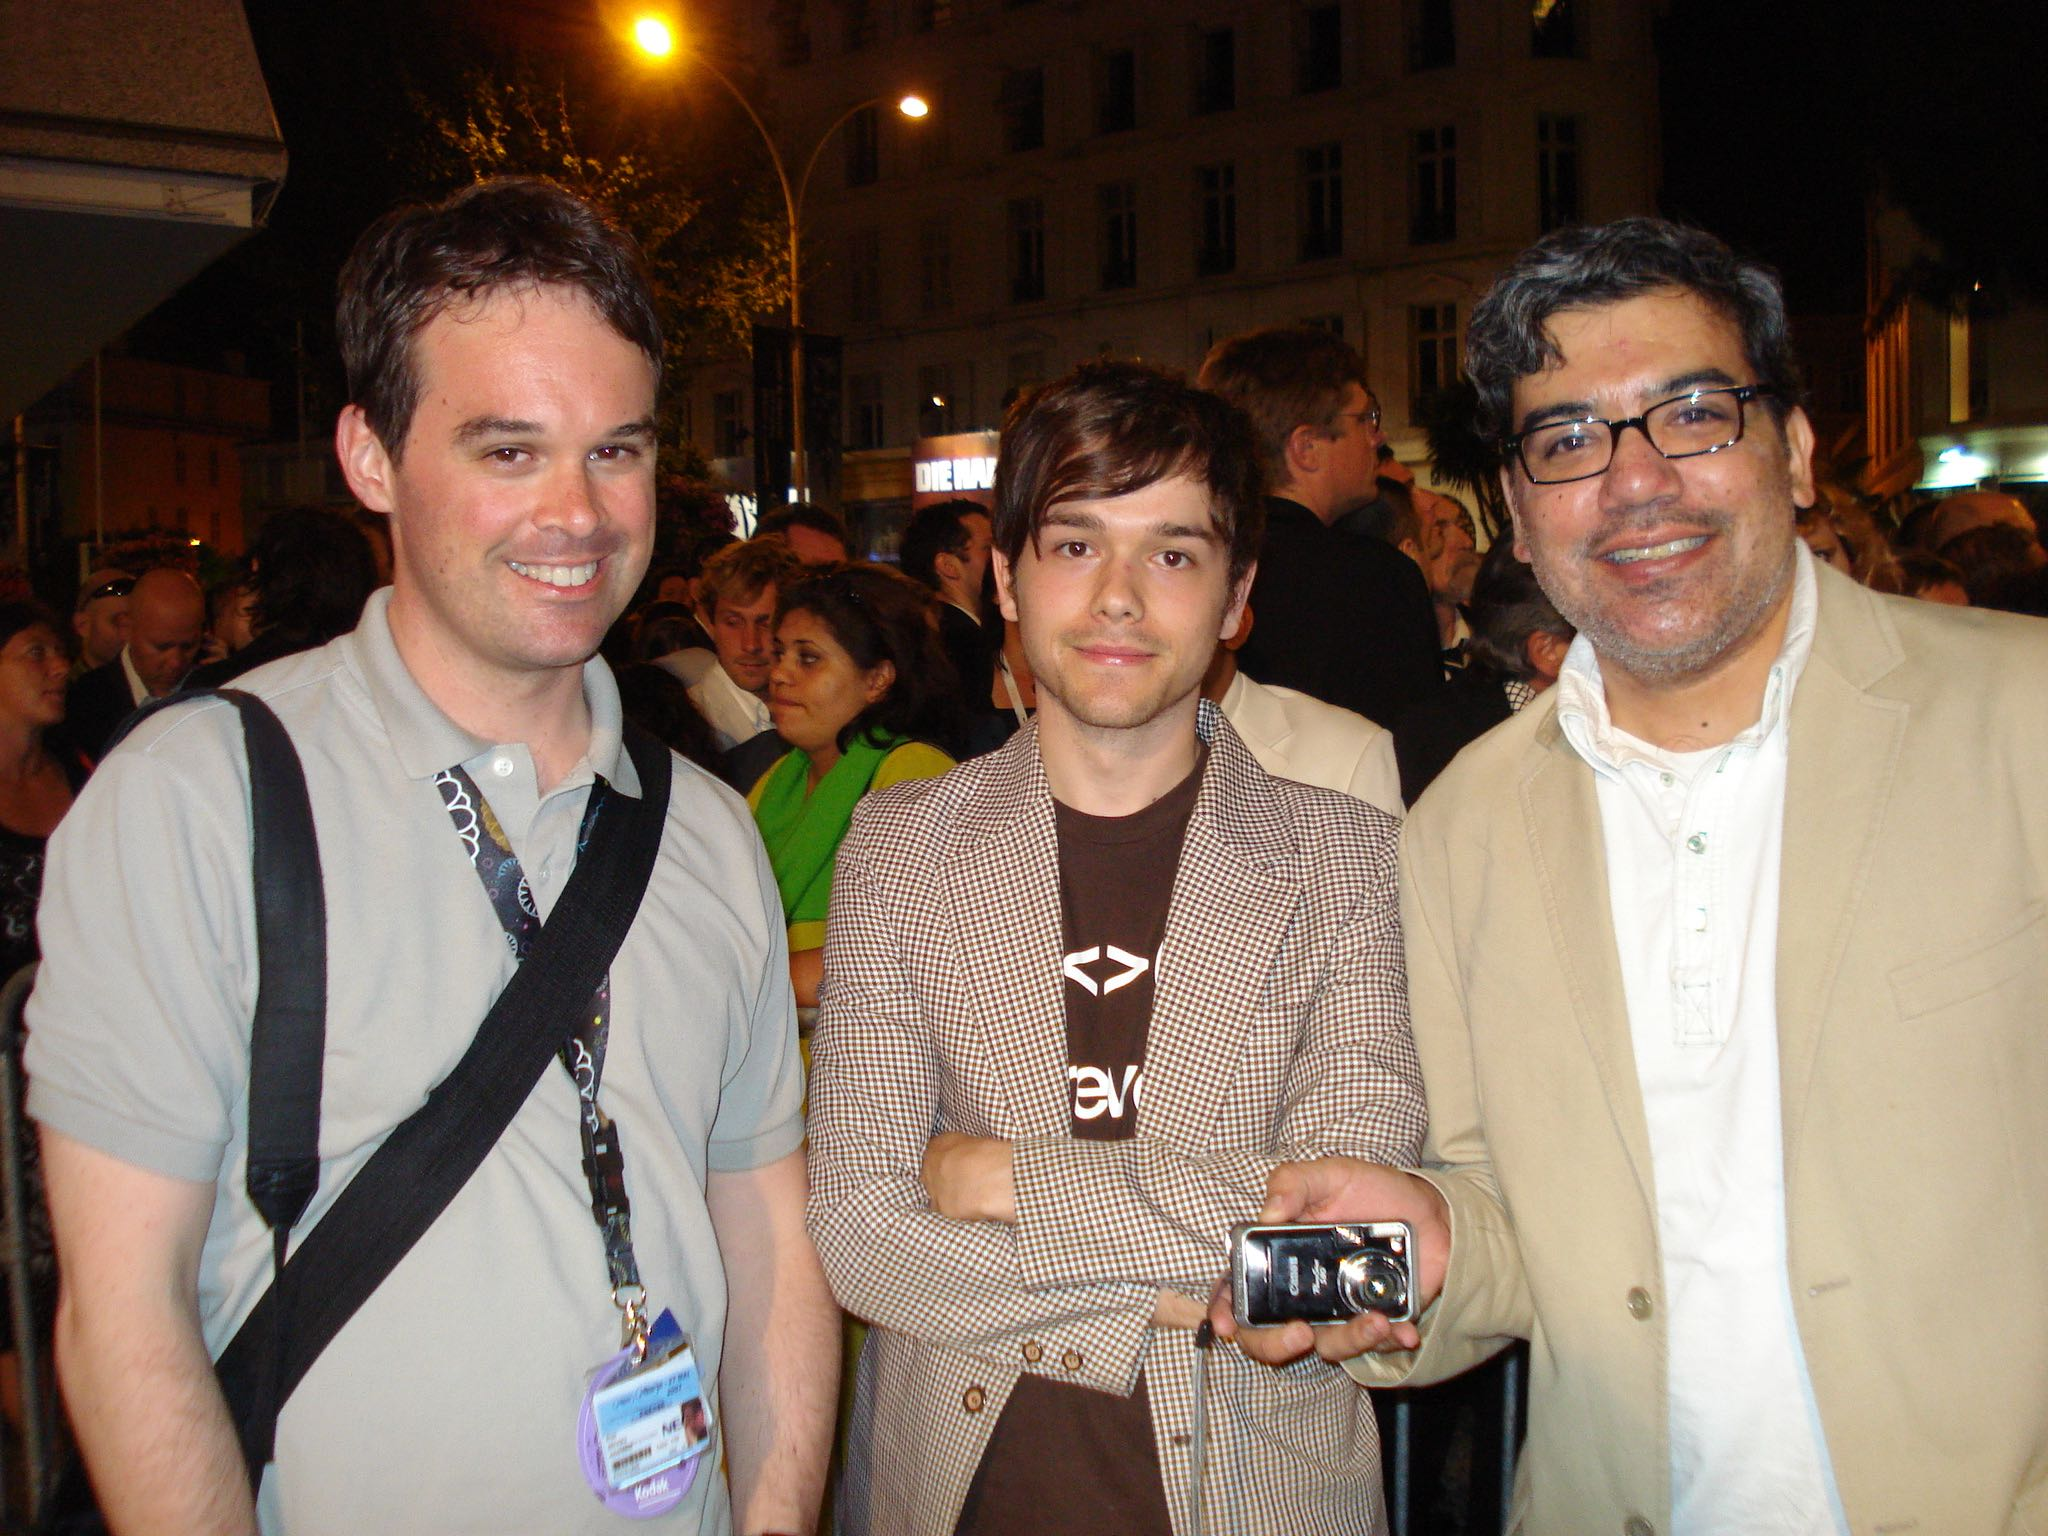 brian_brooks_peter_knegt_and_eugene_hernandez_in_cannes_2007_taken_from_indiwire.jpg